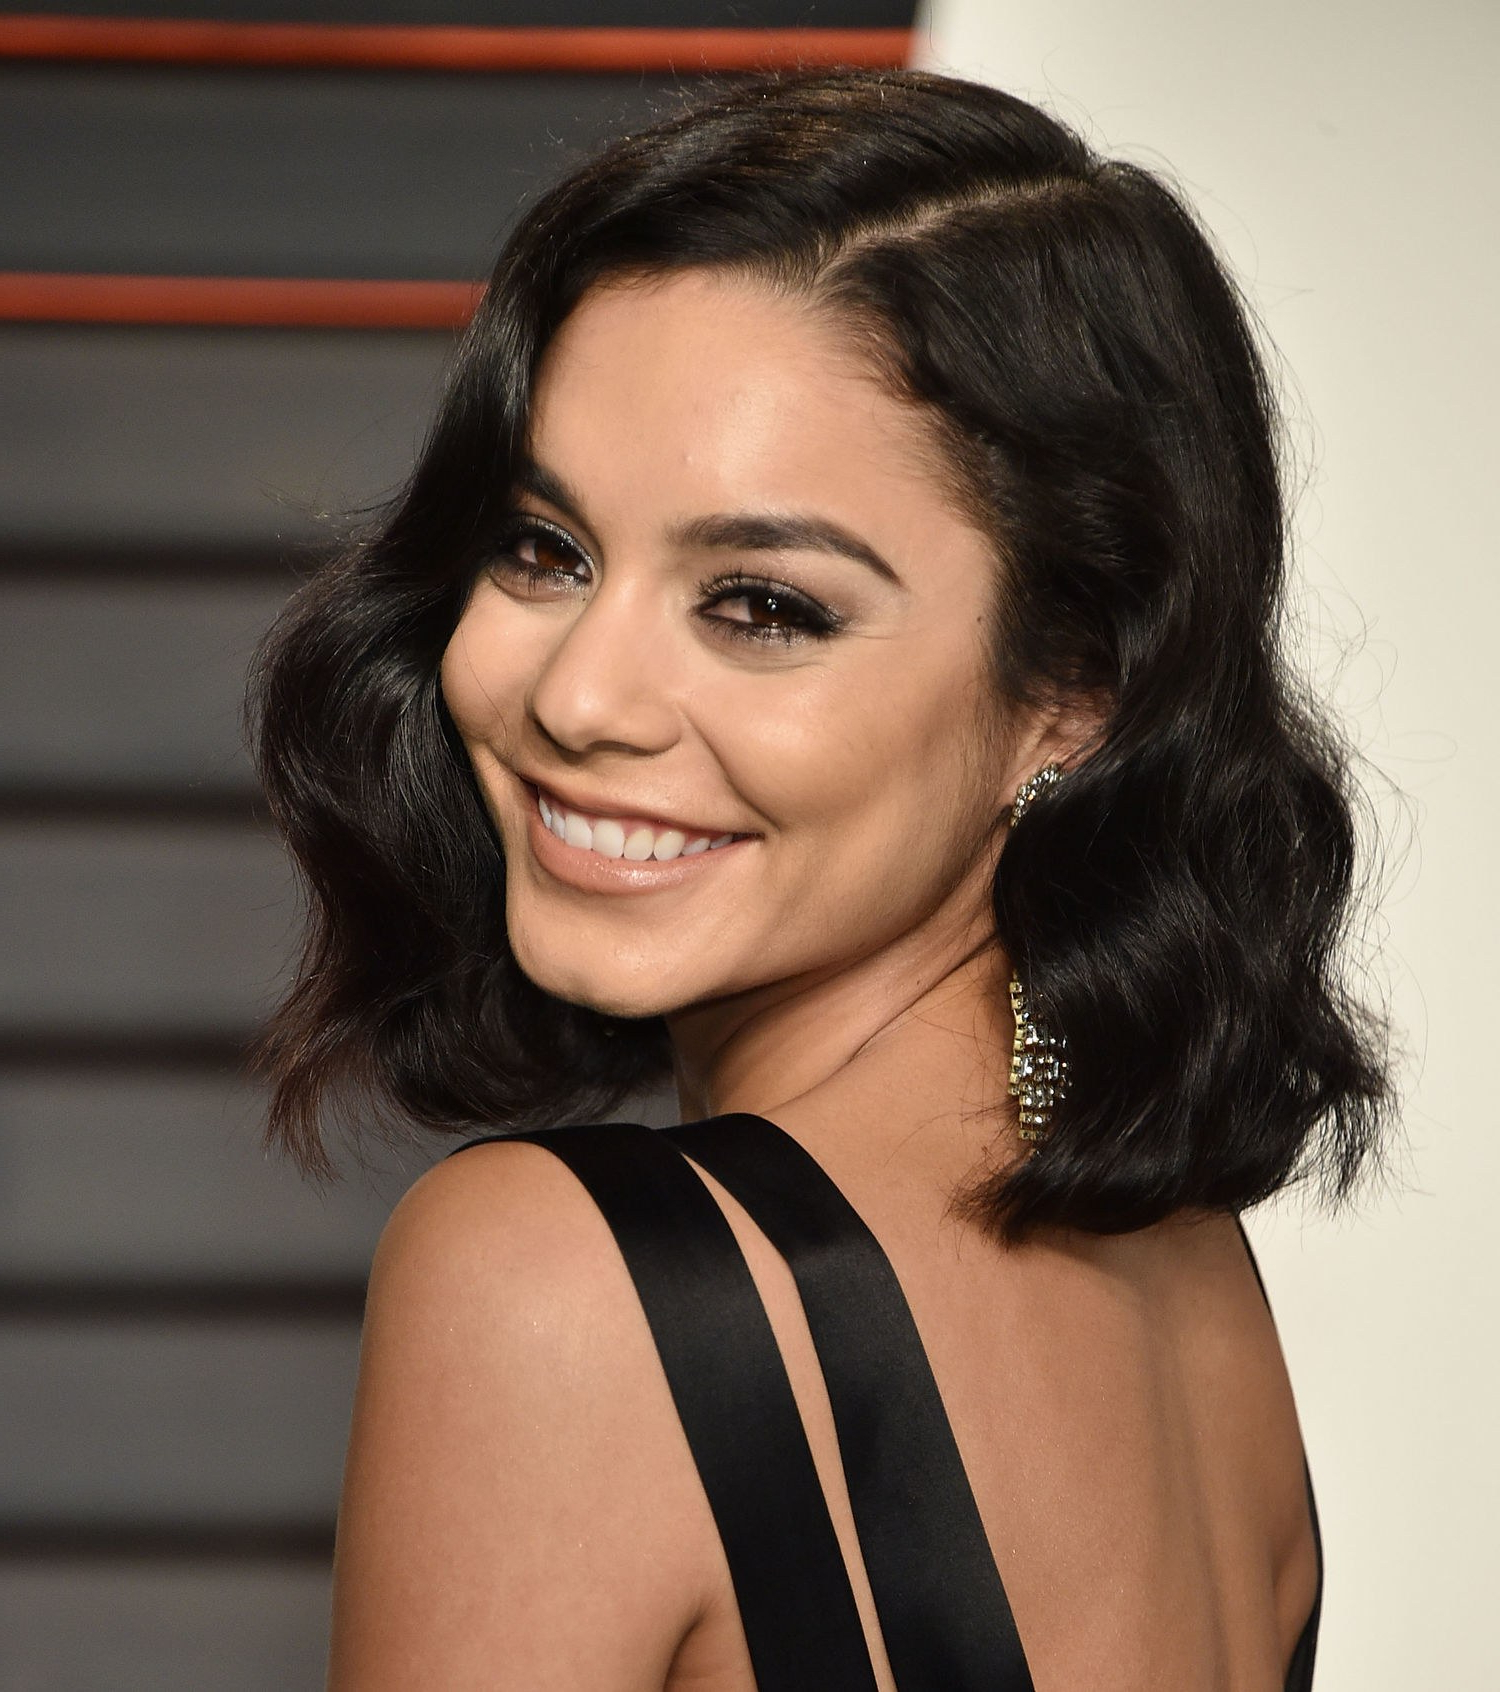 Vanessa Hudgens Got A Major Hair Makeover Just In Time For Coachella With Regard To Vanessa Hudgens Short Haircuts (View 10 of 25)